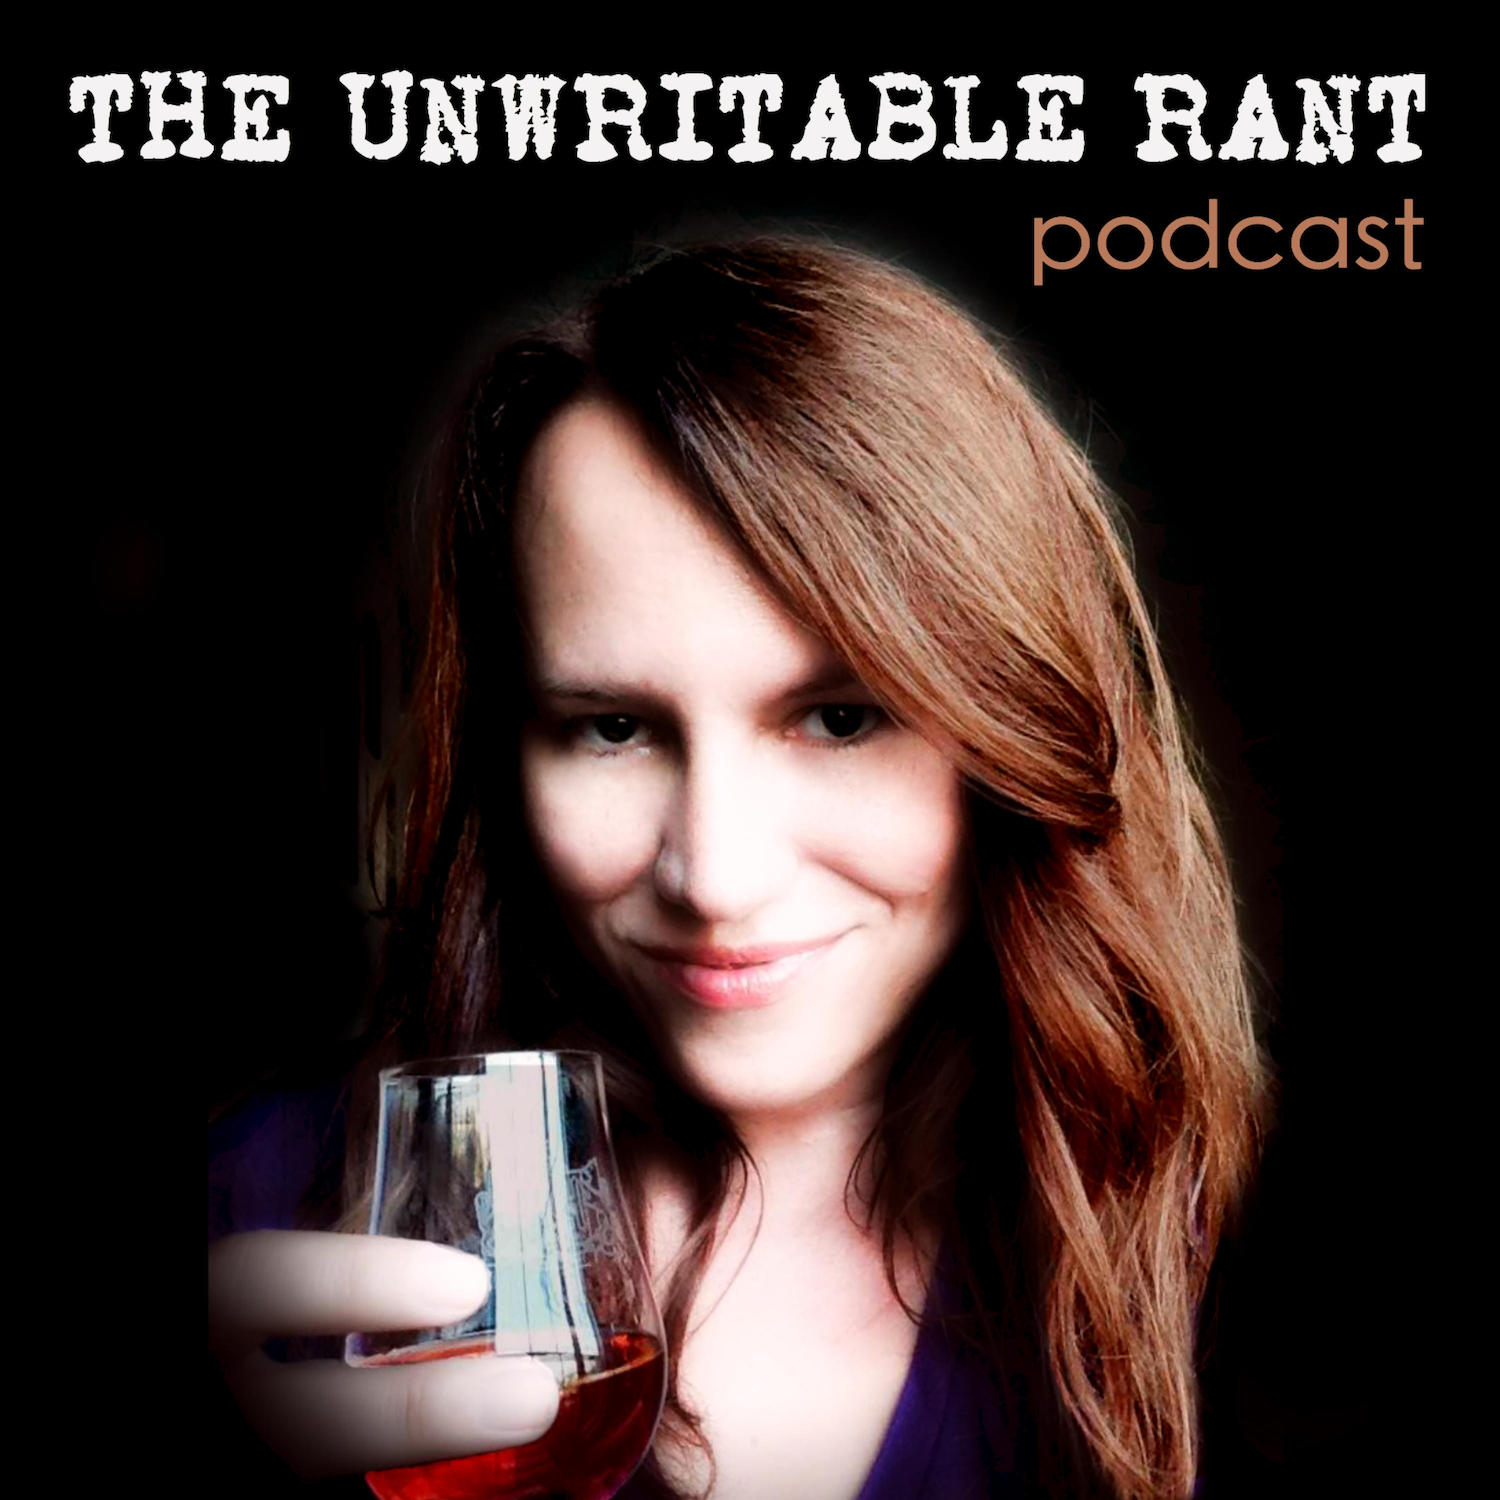 The Unwritable Rant